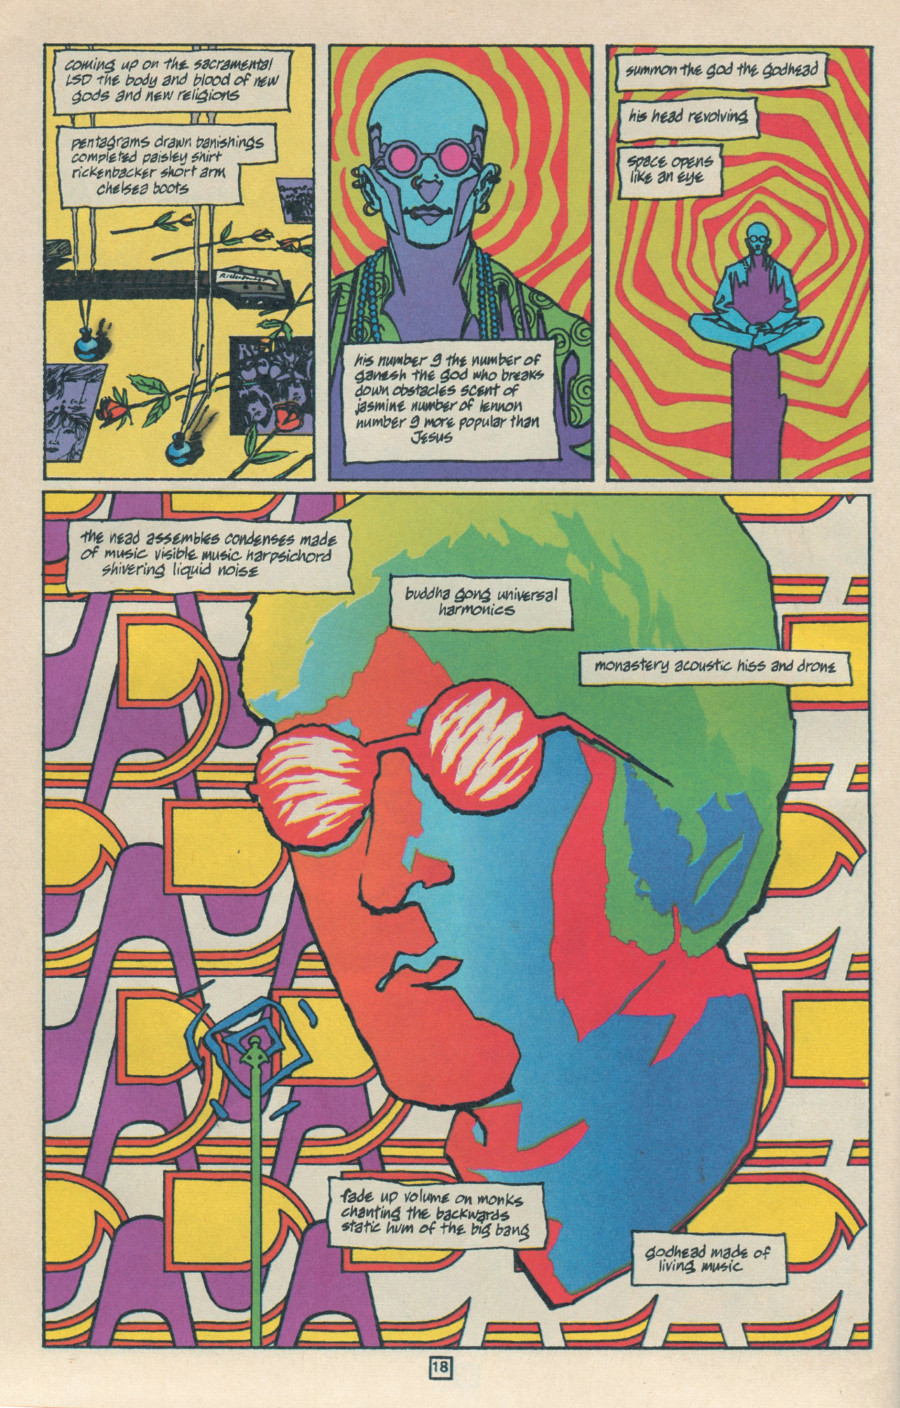 A Comprehensive Guide To The Beatles' Invasion Of Comic